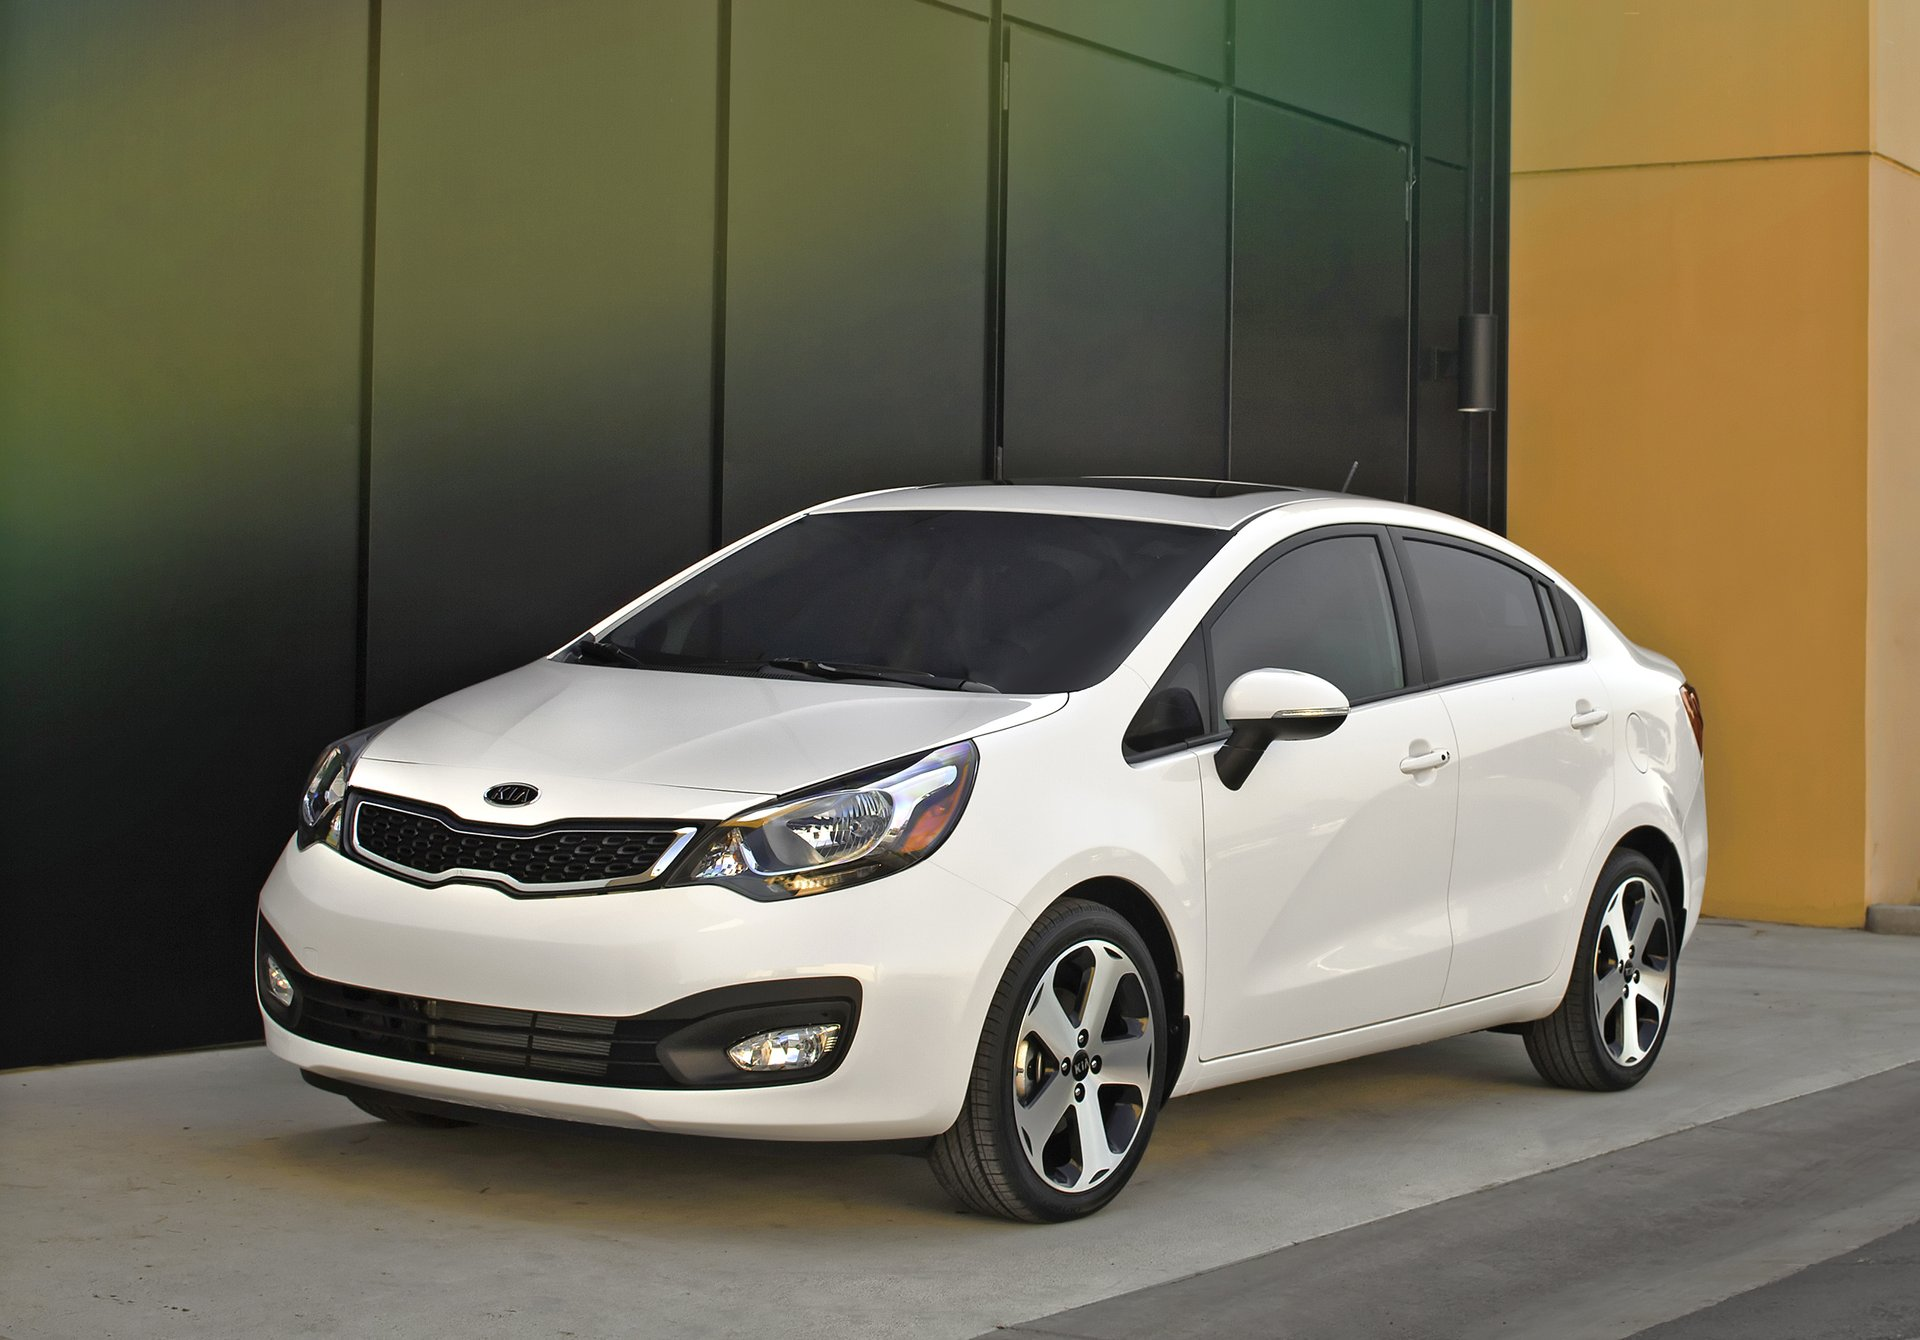 2015 Kia Rio Review, Ratings, Specs, Prices, and Photos - The Car Connection